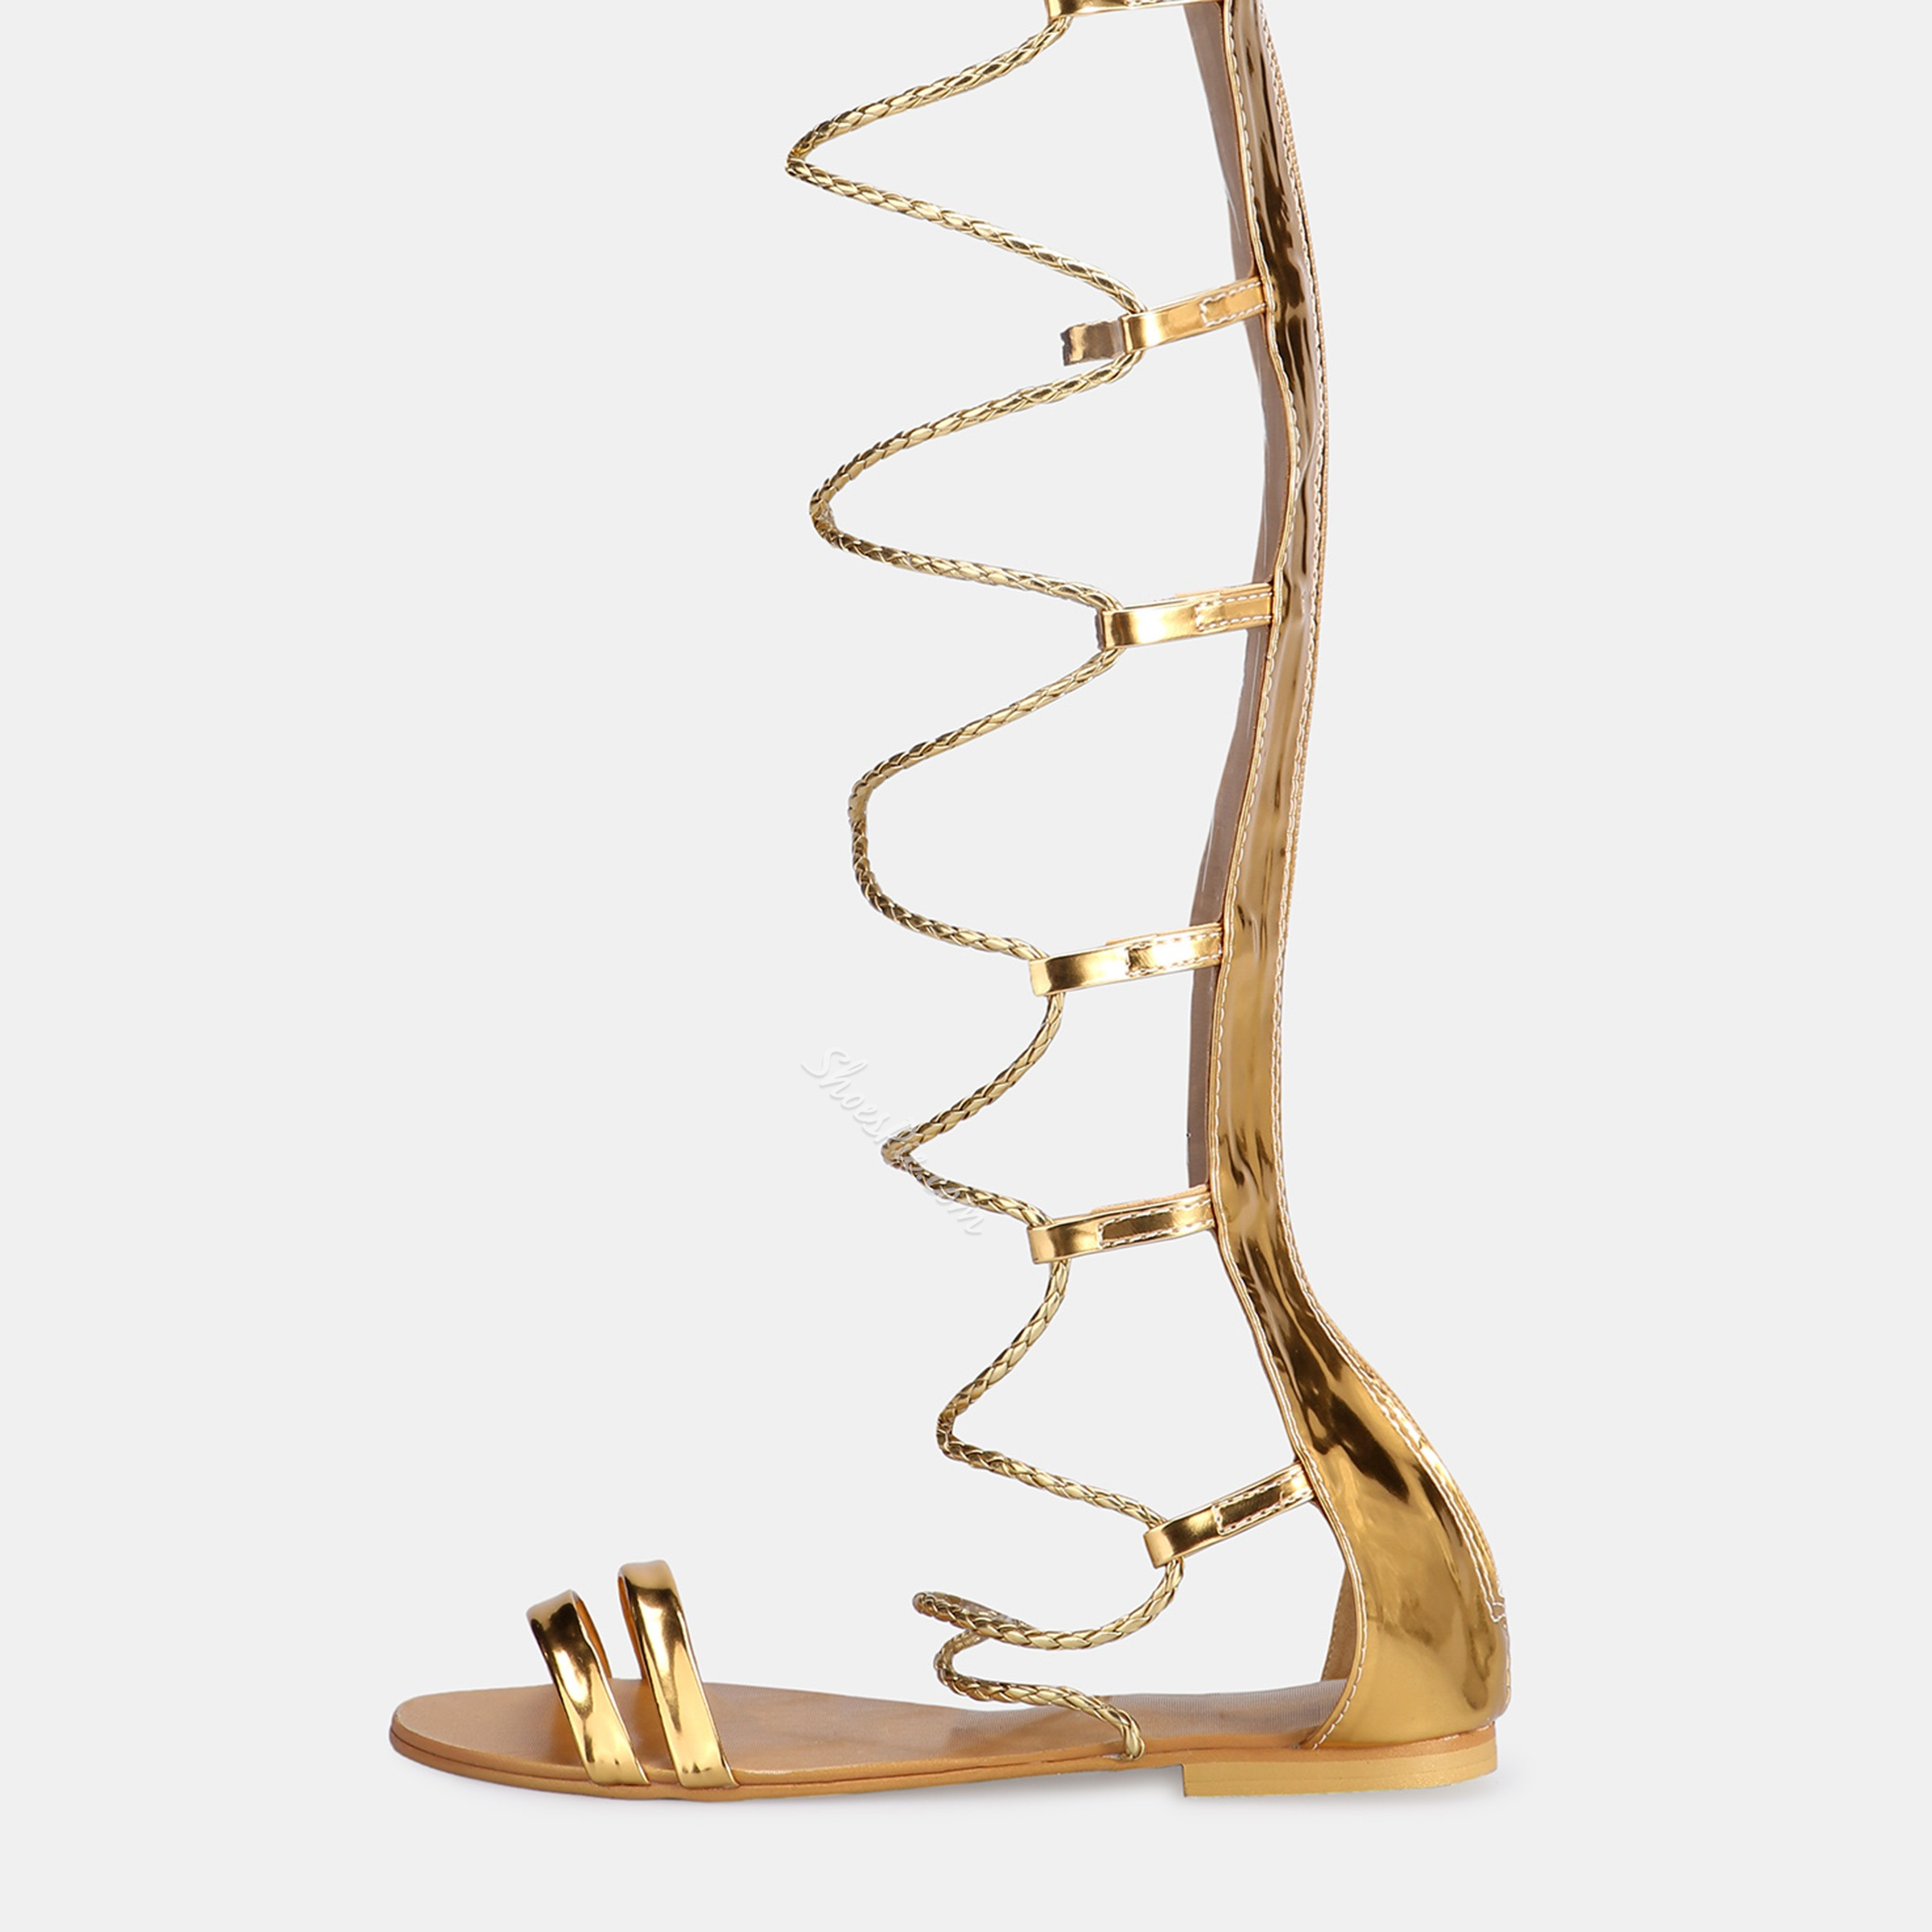 Shoespie Lace-Up High Shaft Golden Gladiator Sandals